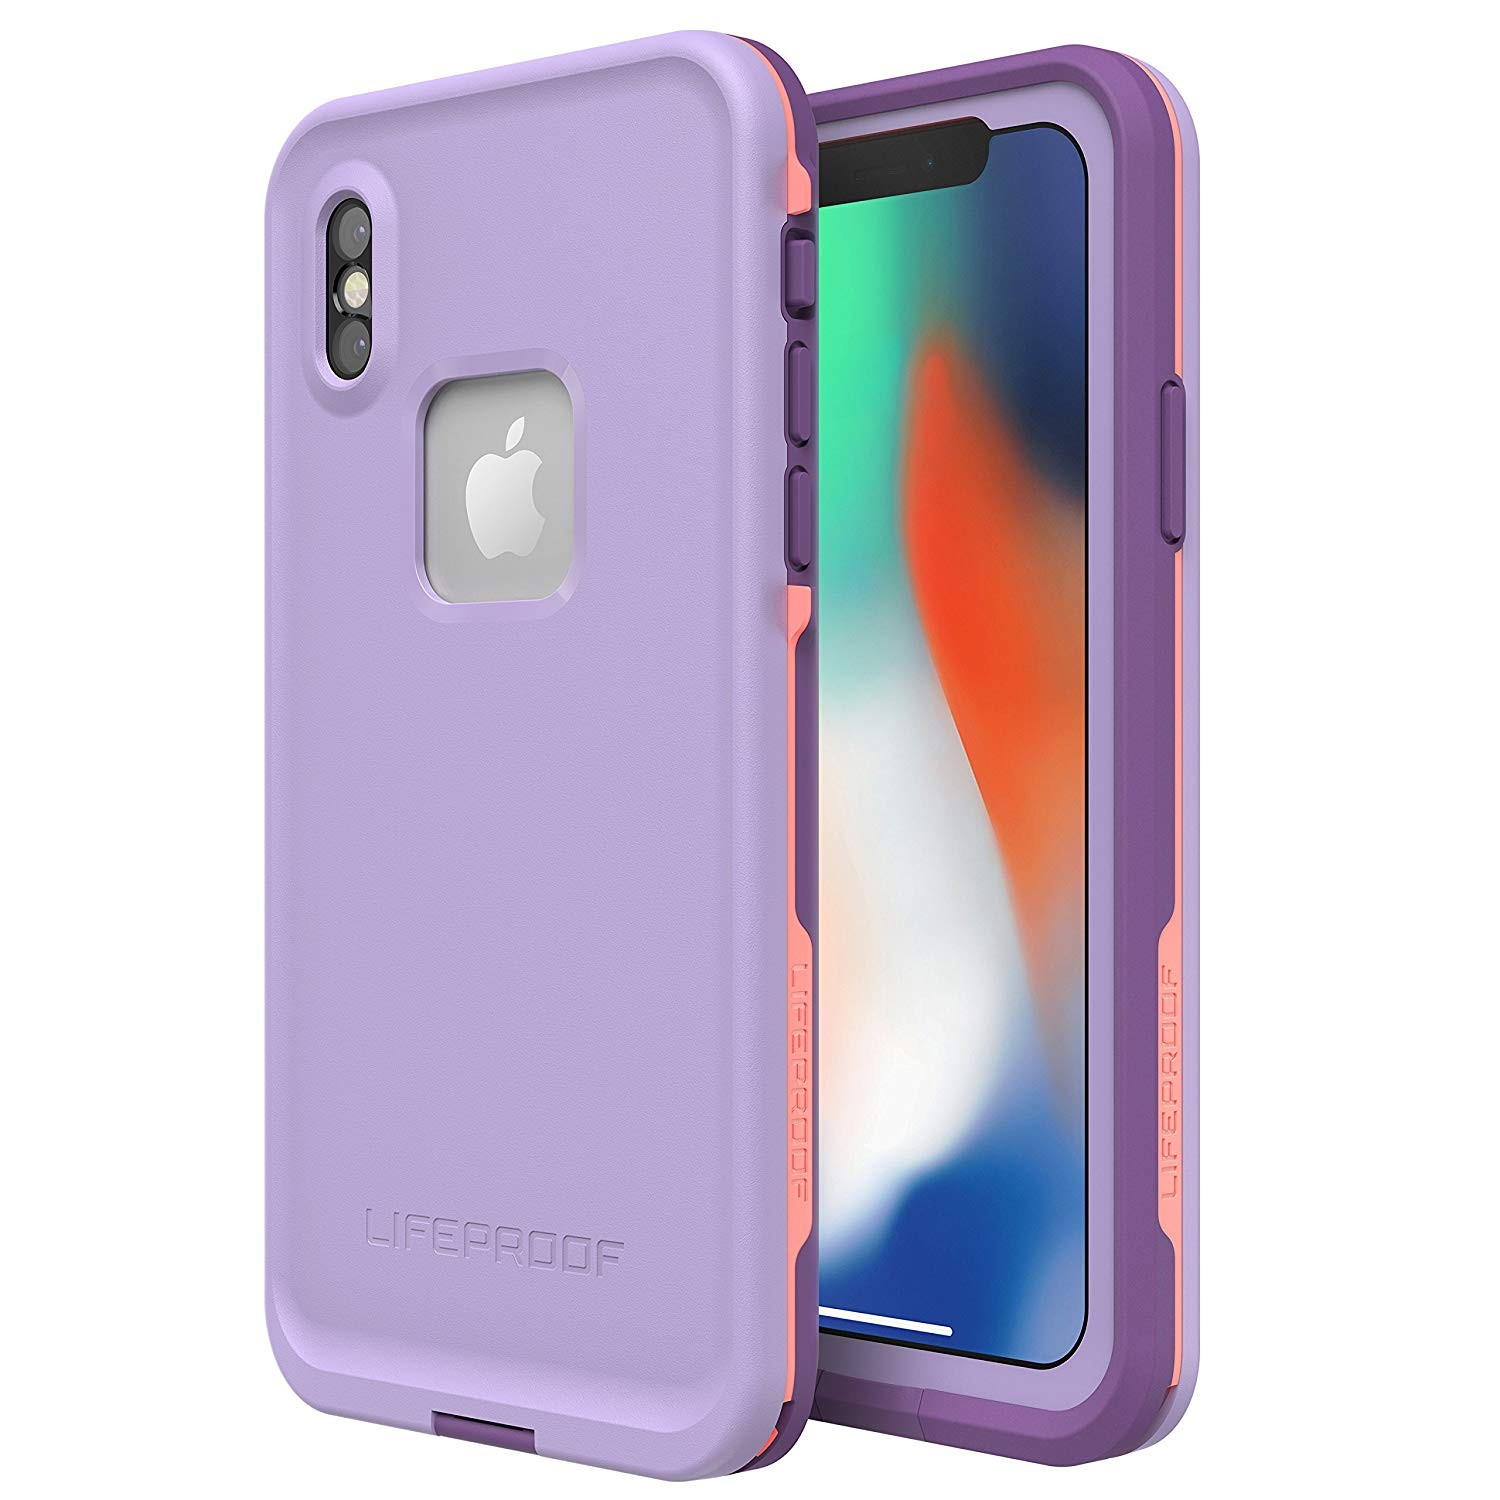 Lifeproof FR? SERIES Waterproof Case for iPhone X (ONLY) - CHAKRA (ROSE/FUSION CORAL/ROYAL LILAC)